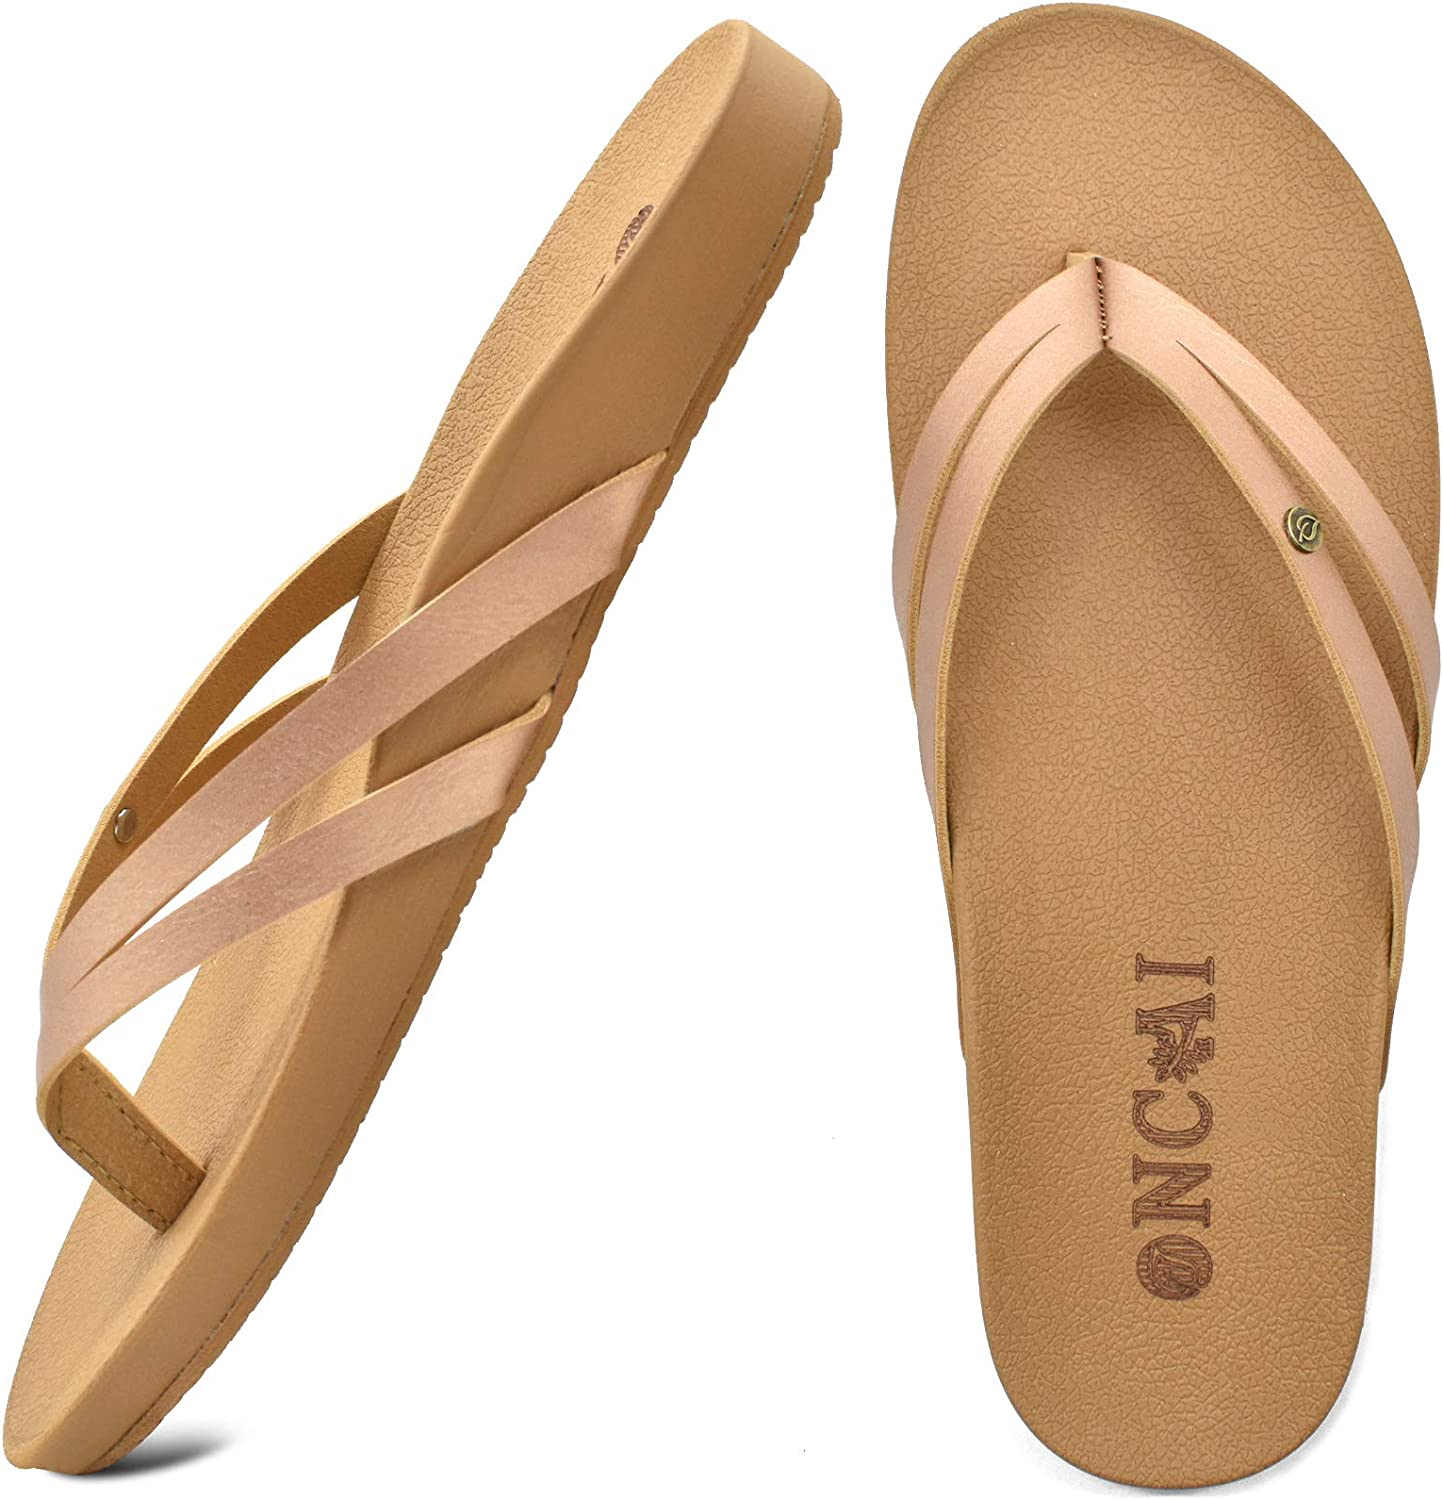 ONCAI Womens Flip Flops Orthotic Arch Support Fashion Summer Beach Thong Sandals for Women with Soft Cushion Yoga Mat Size 5-10